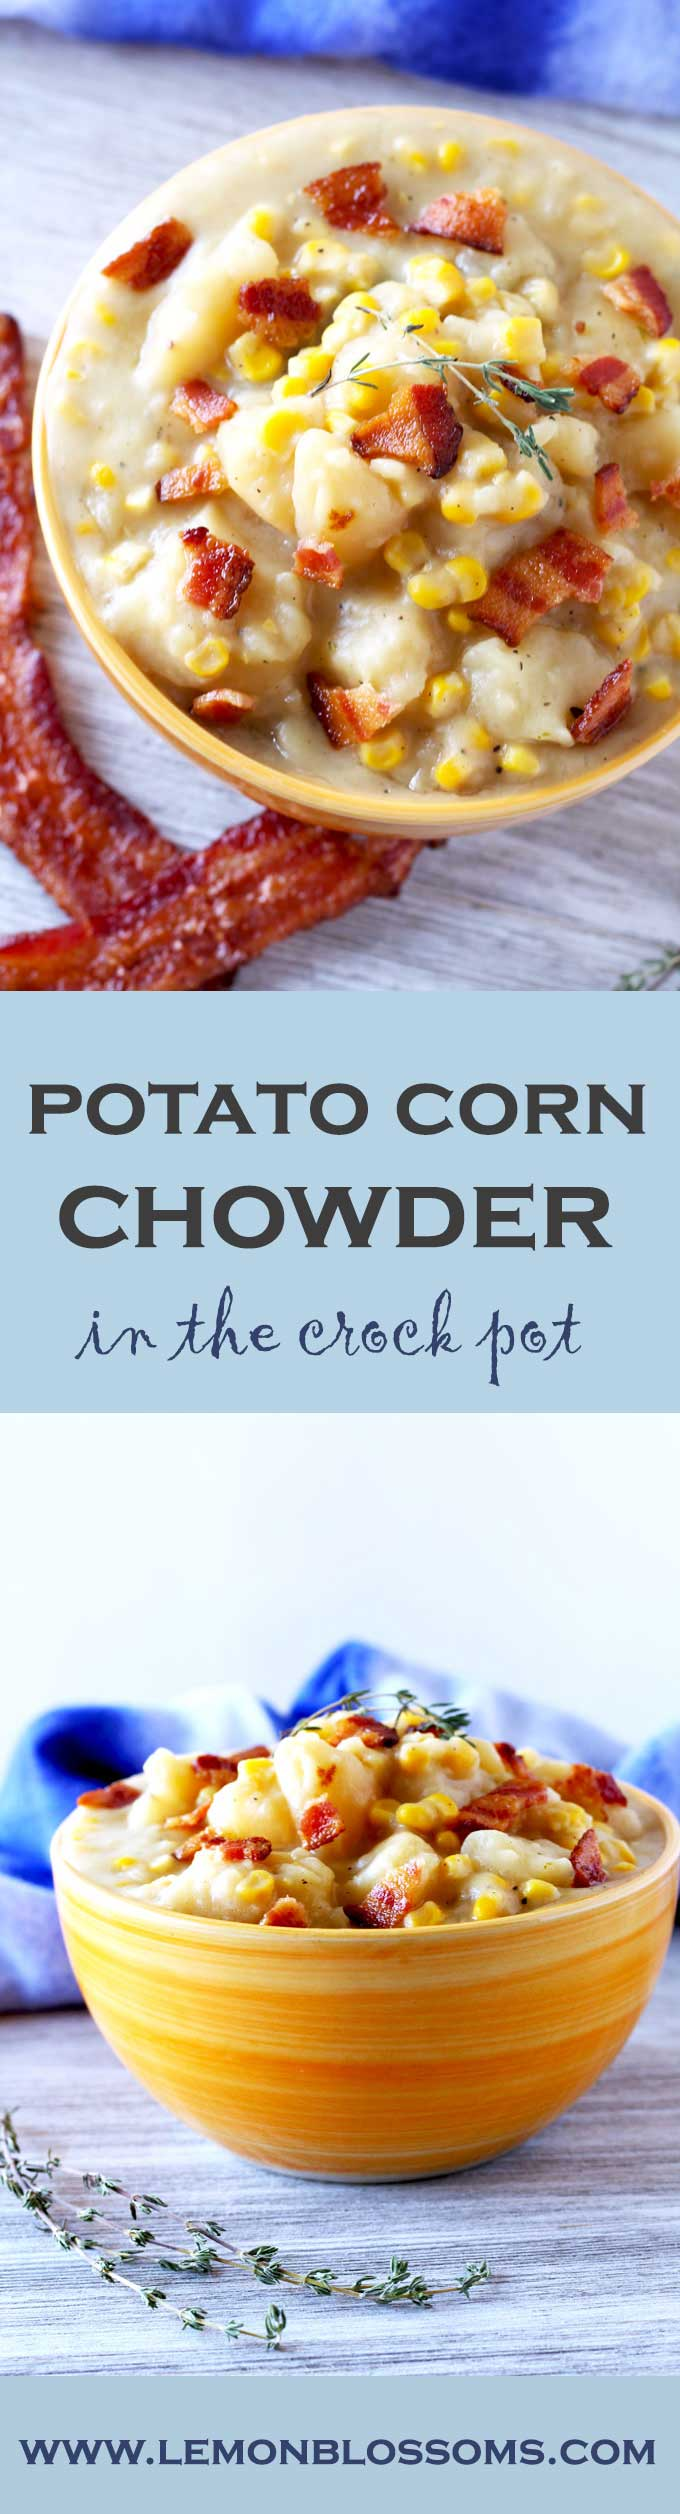 Creamy, thick, flavorful and super easy to make. This Potato Corn Chowder made the slow cooker is comfort food to the max! #slowcooker #crockpot #soup #potatocornchowder #chowder #comfortfood